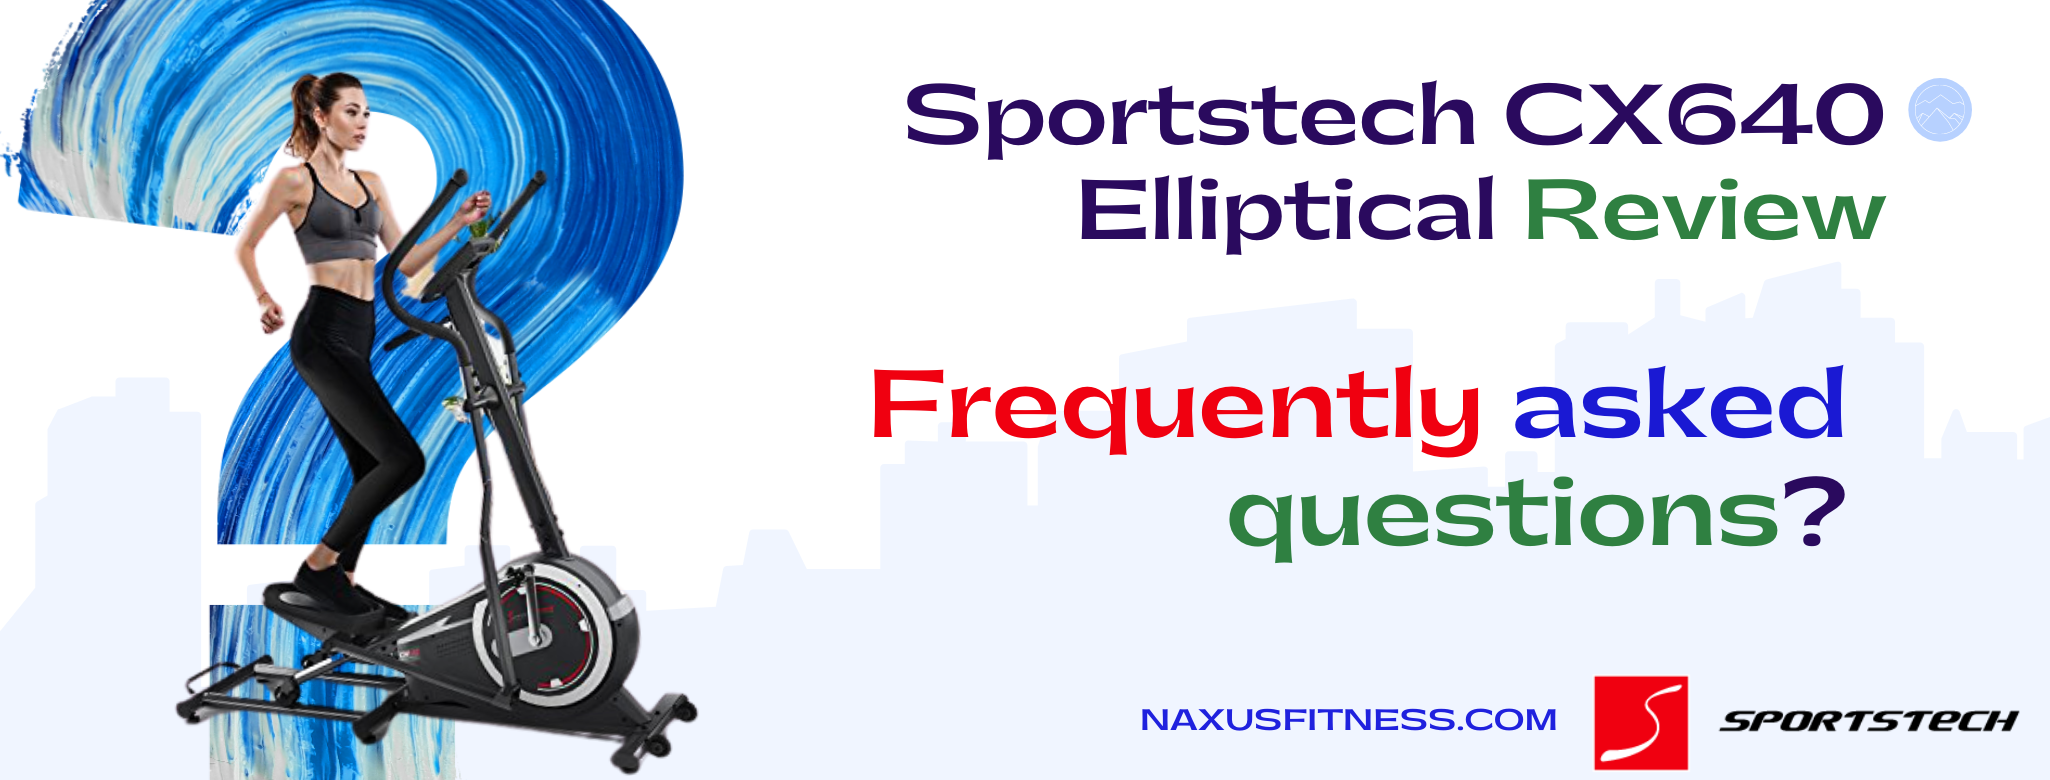 Sportstech CX640 FAQs - Frequently asked questions